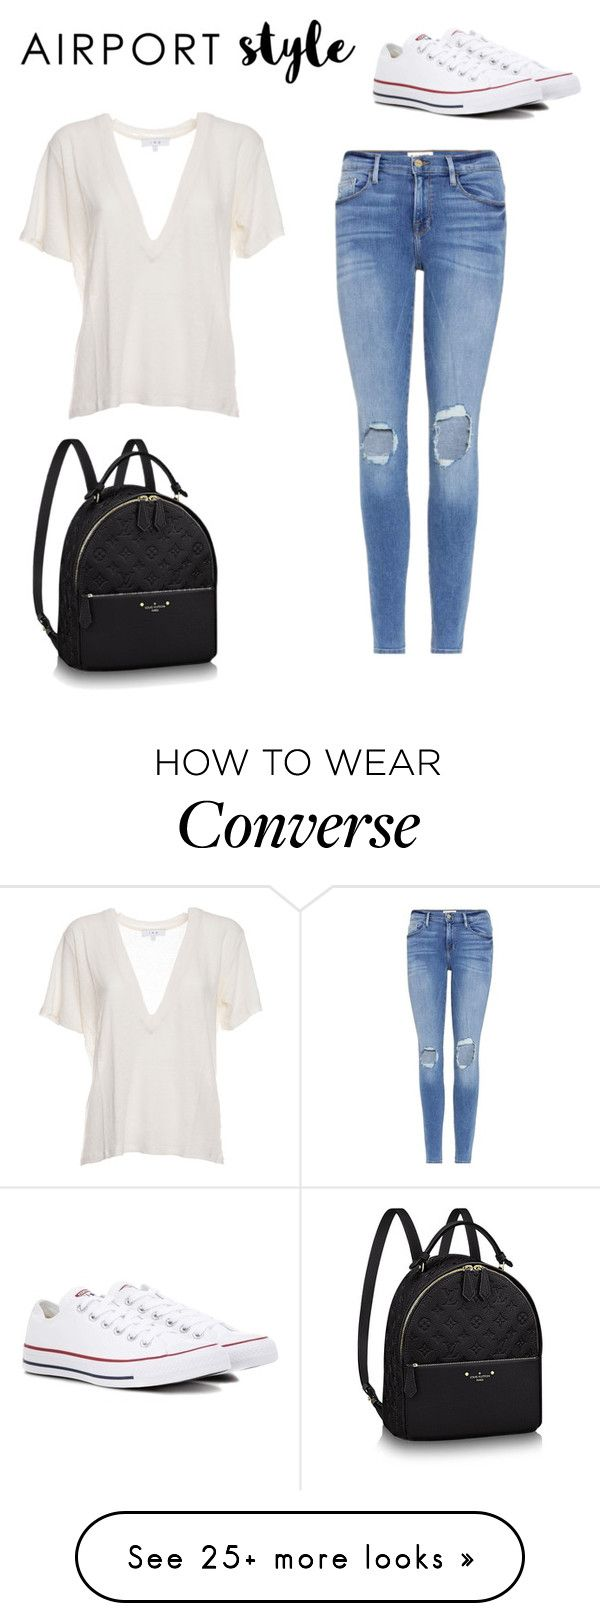 """Untitled #172"" by thegoldenhairedgirl on Polyvore featuring Frame, IRO, Converse and airportstyle"